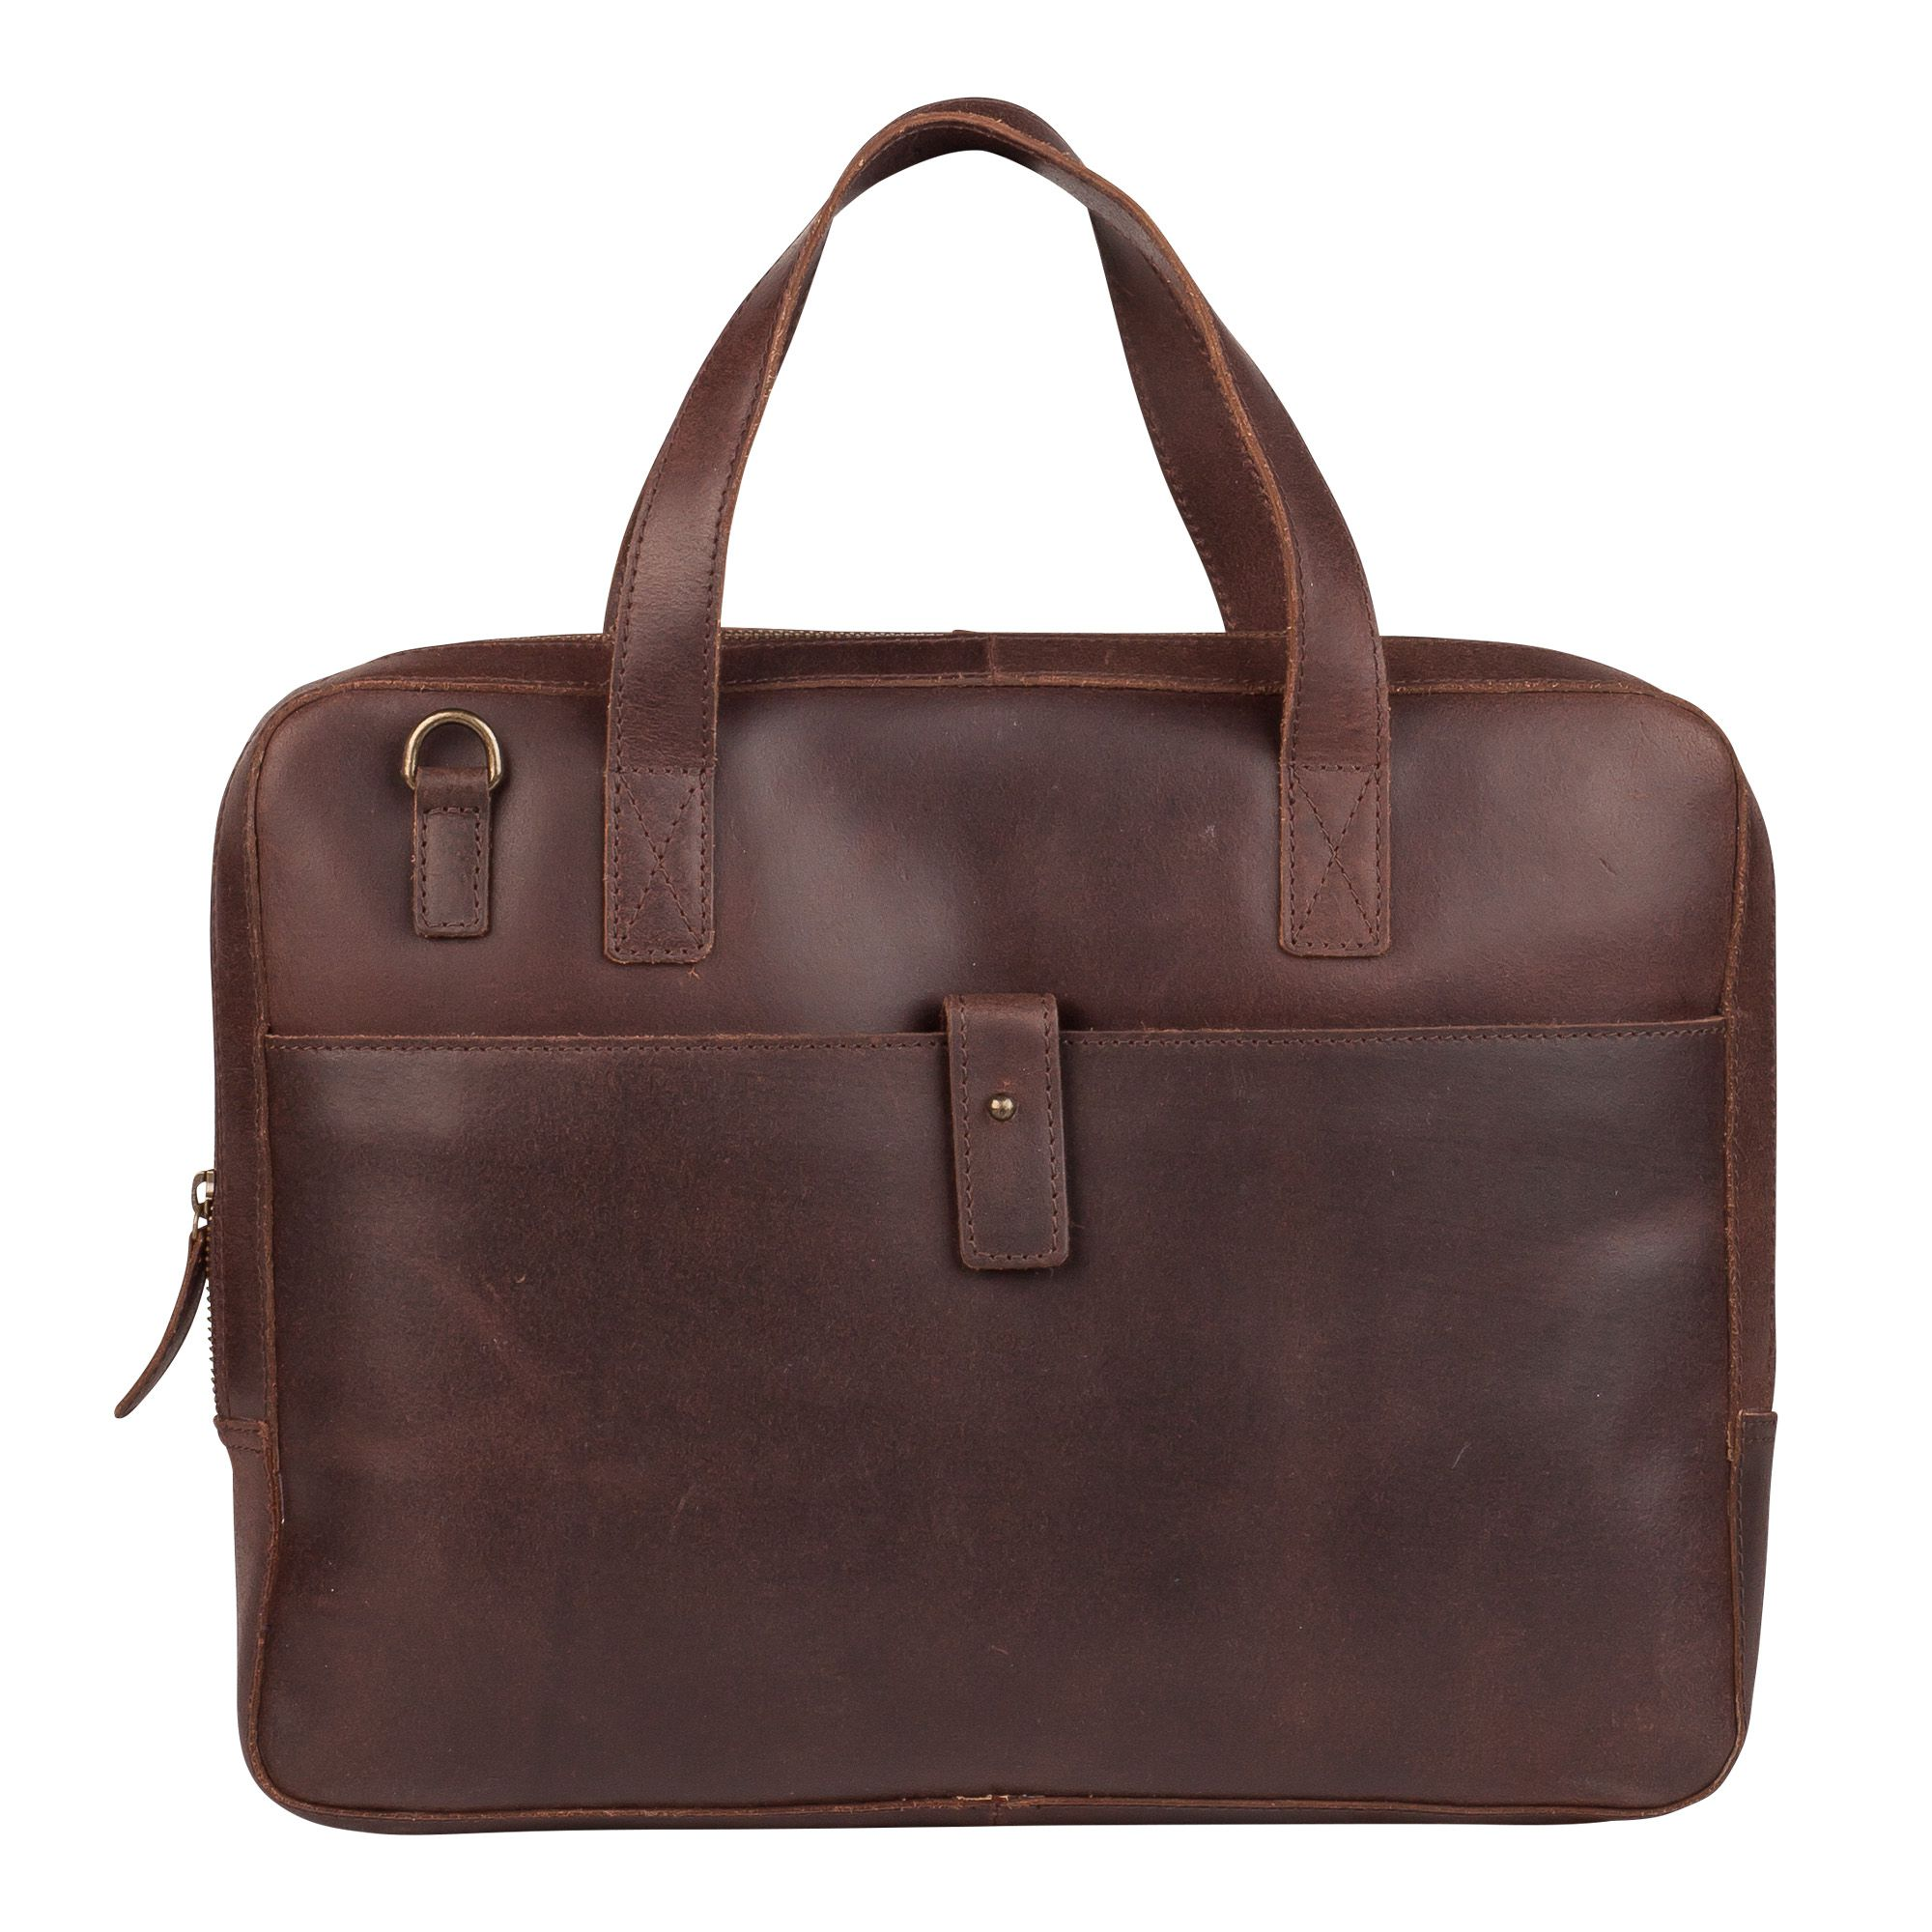 Laptoptas Burkely Noa Vintage Businessbag Slim Dark Brown 14 inch